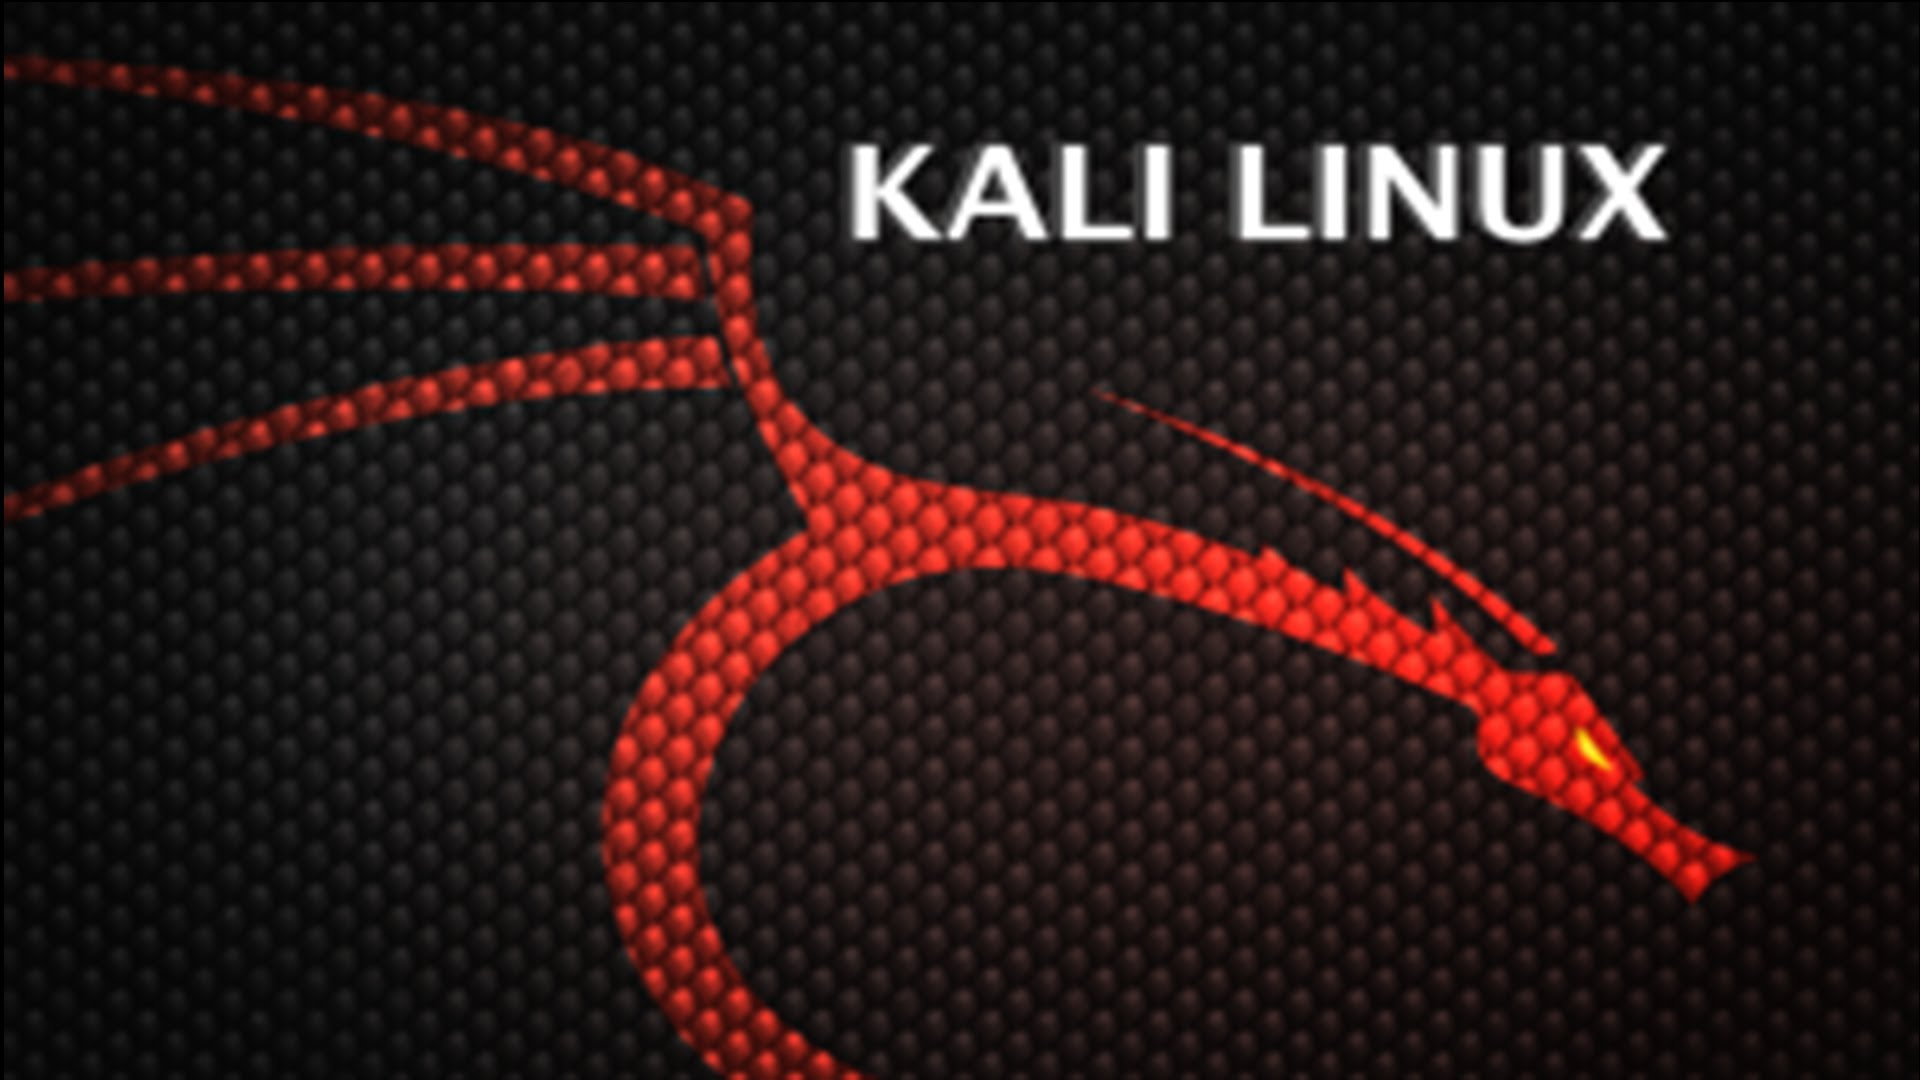 Software-update: Kali Linux 2.0 - Linux Magazine